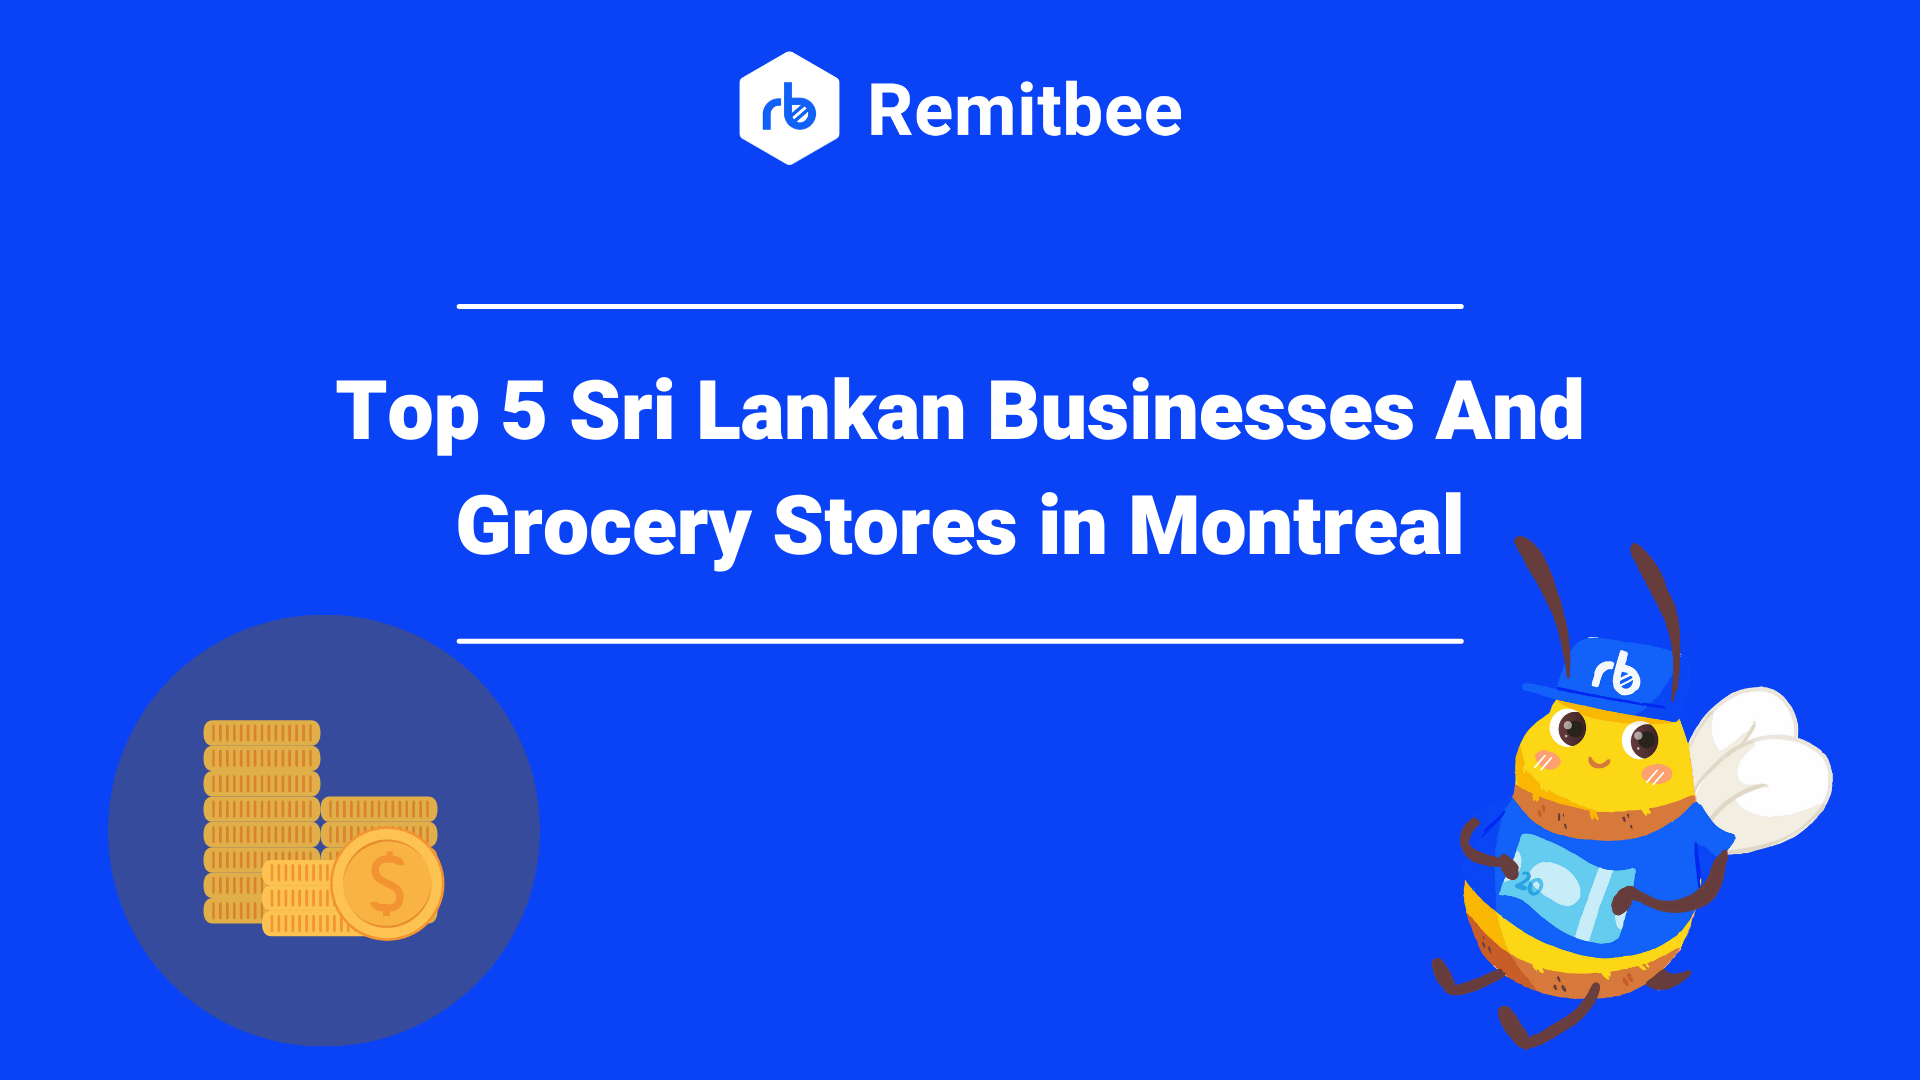 Top 5 Sri Lankan Businesses And Grocery Stores in Montreal